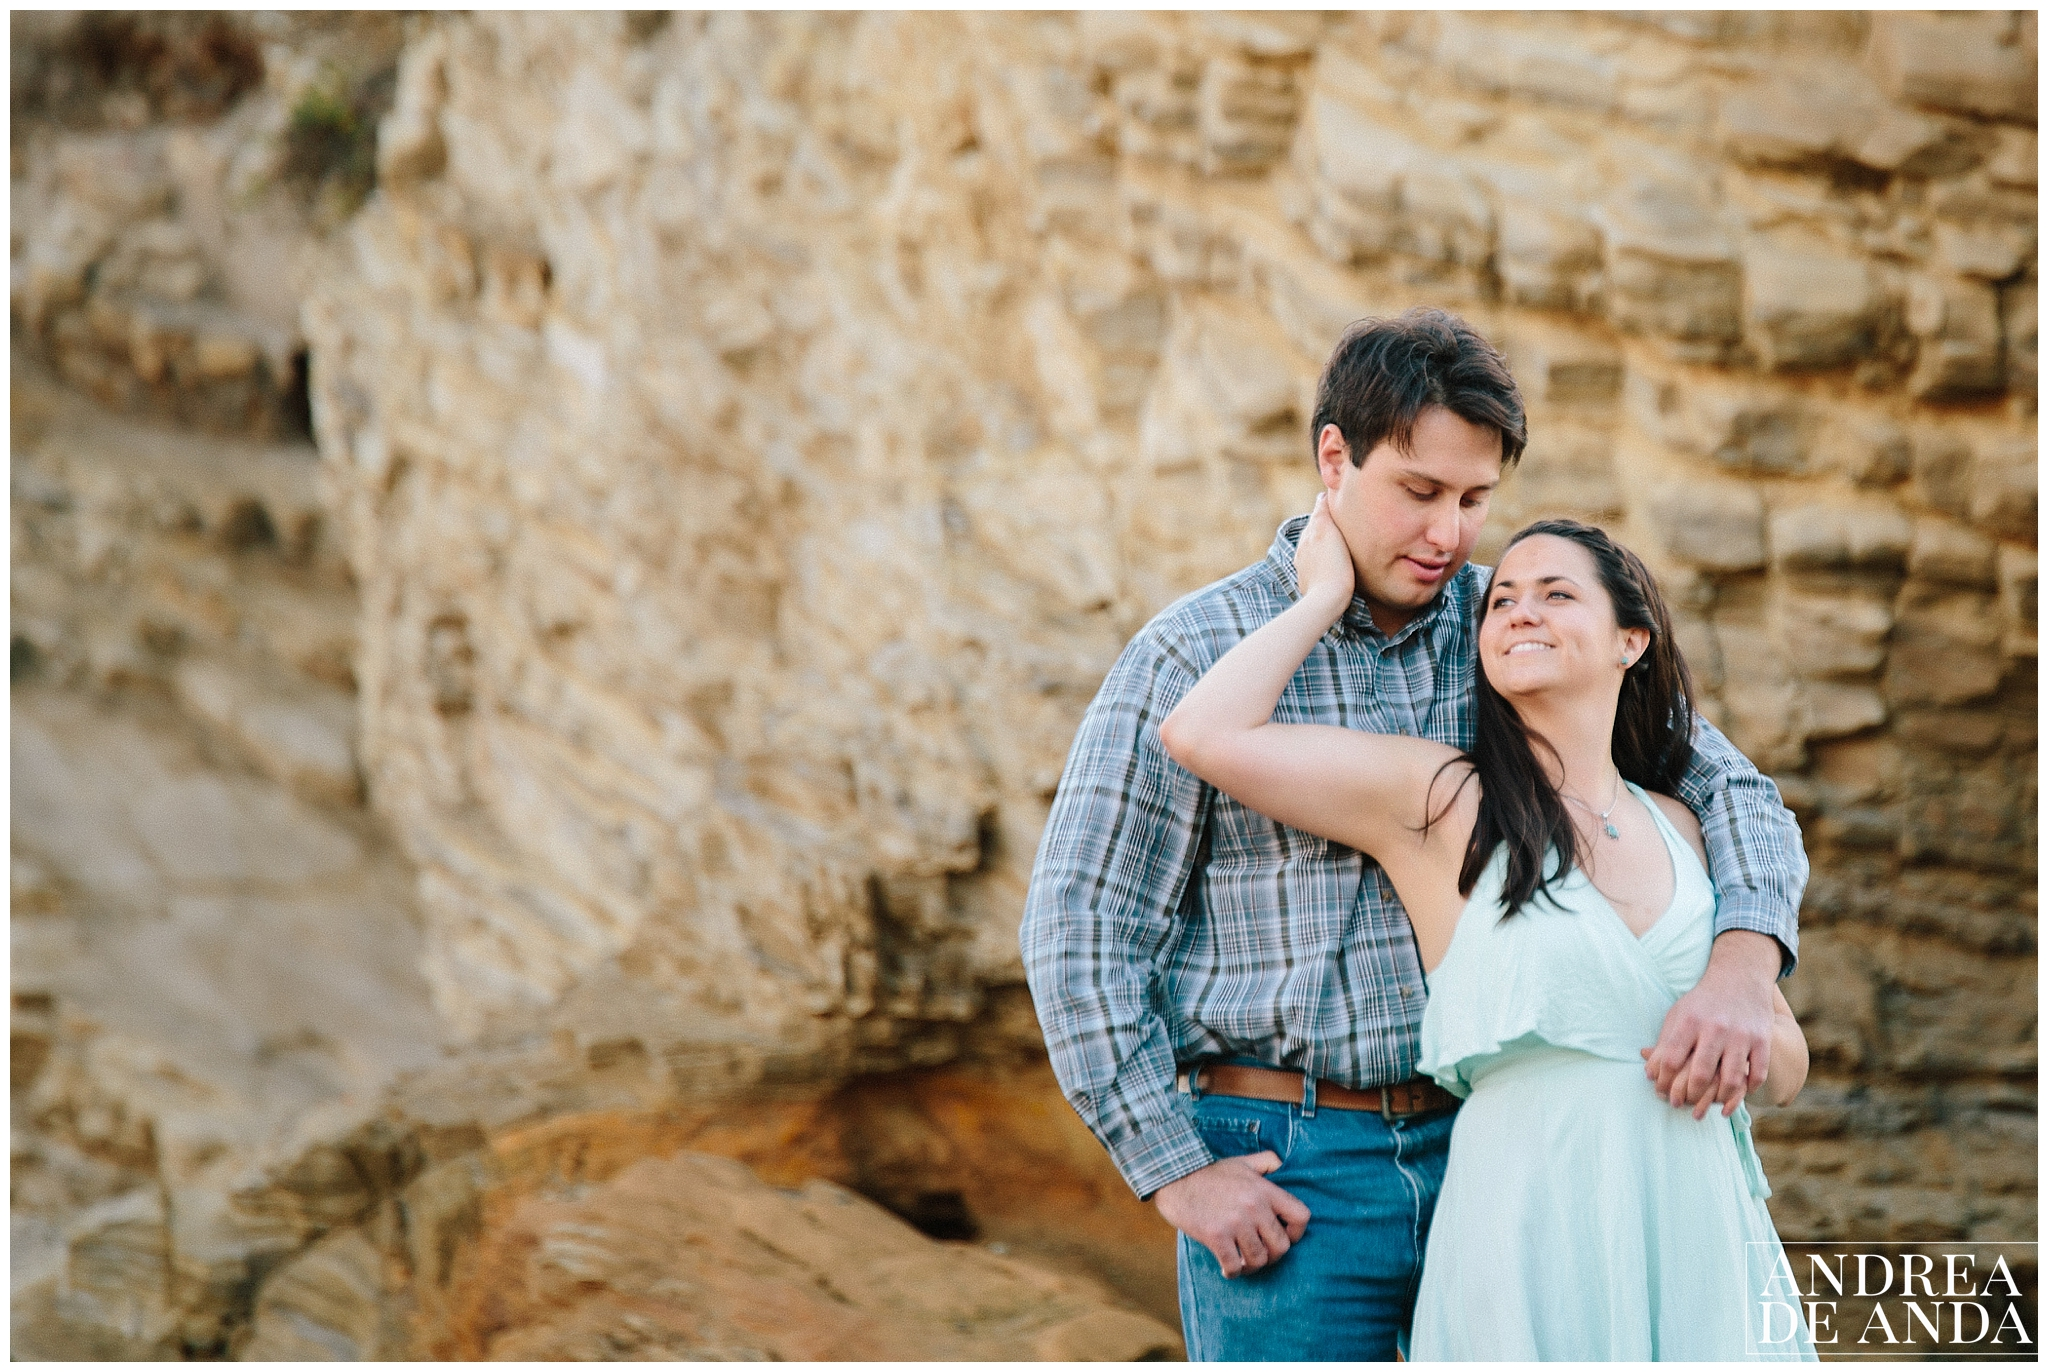 San Luis Obispo_Engagement session_Andrea de Anda Photography__0014.jpg